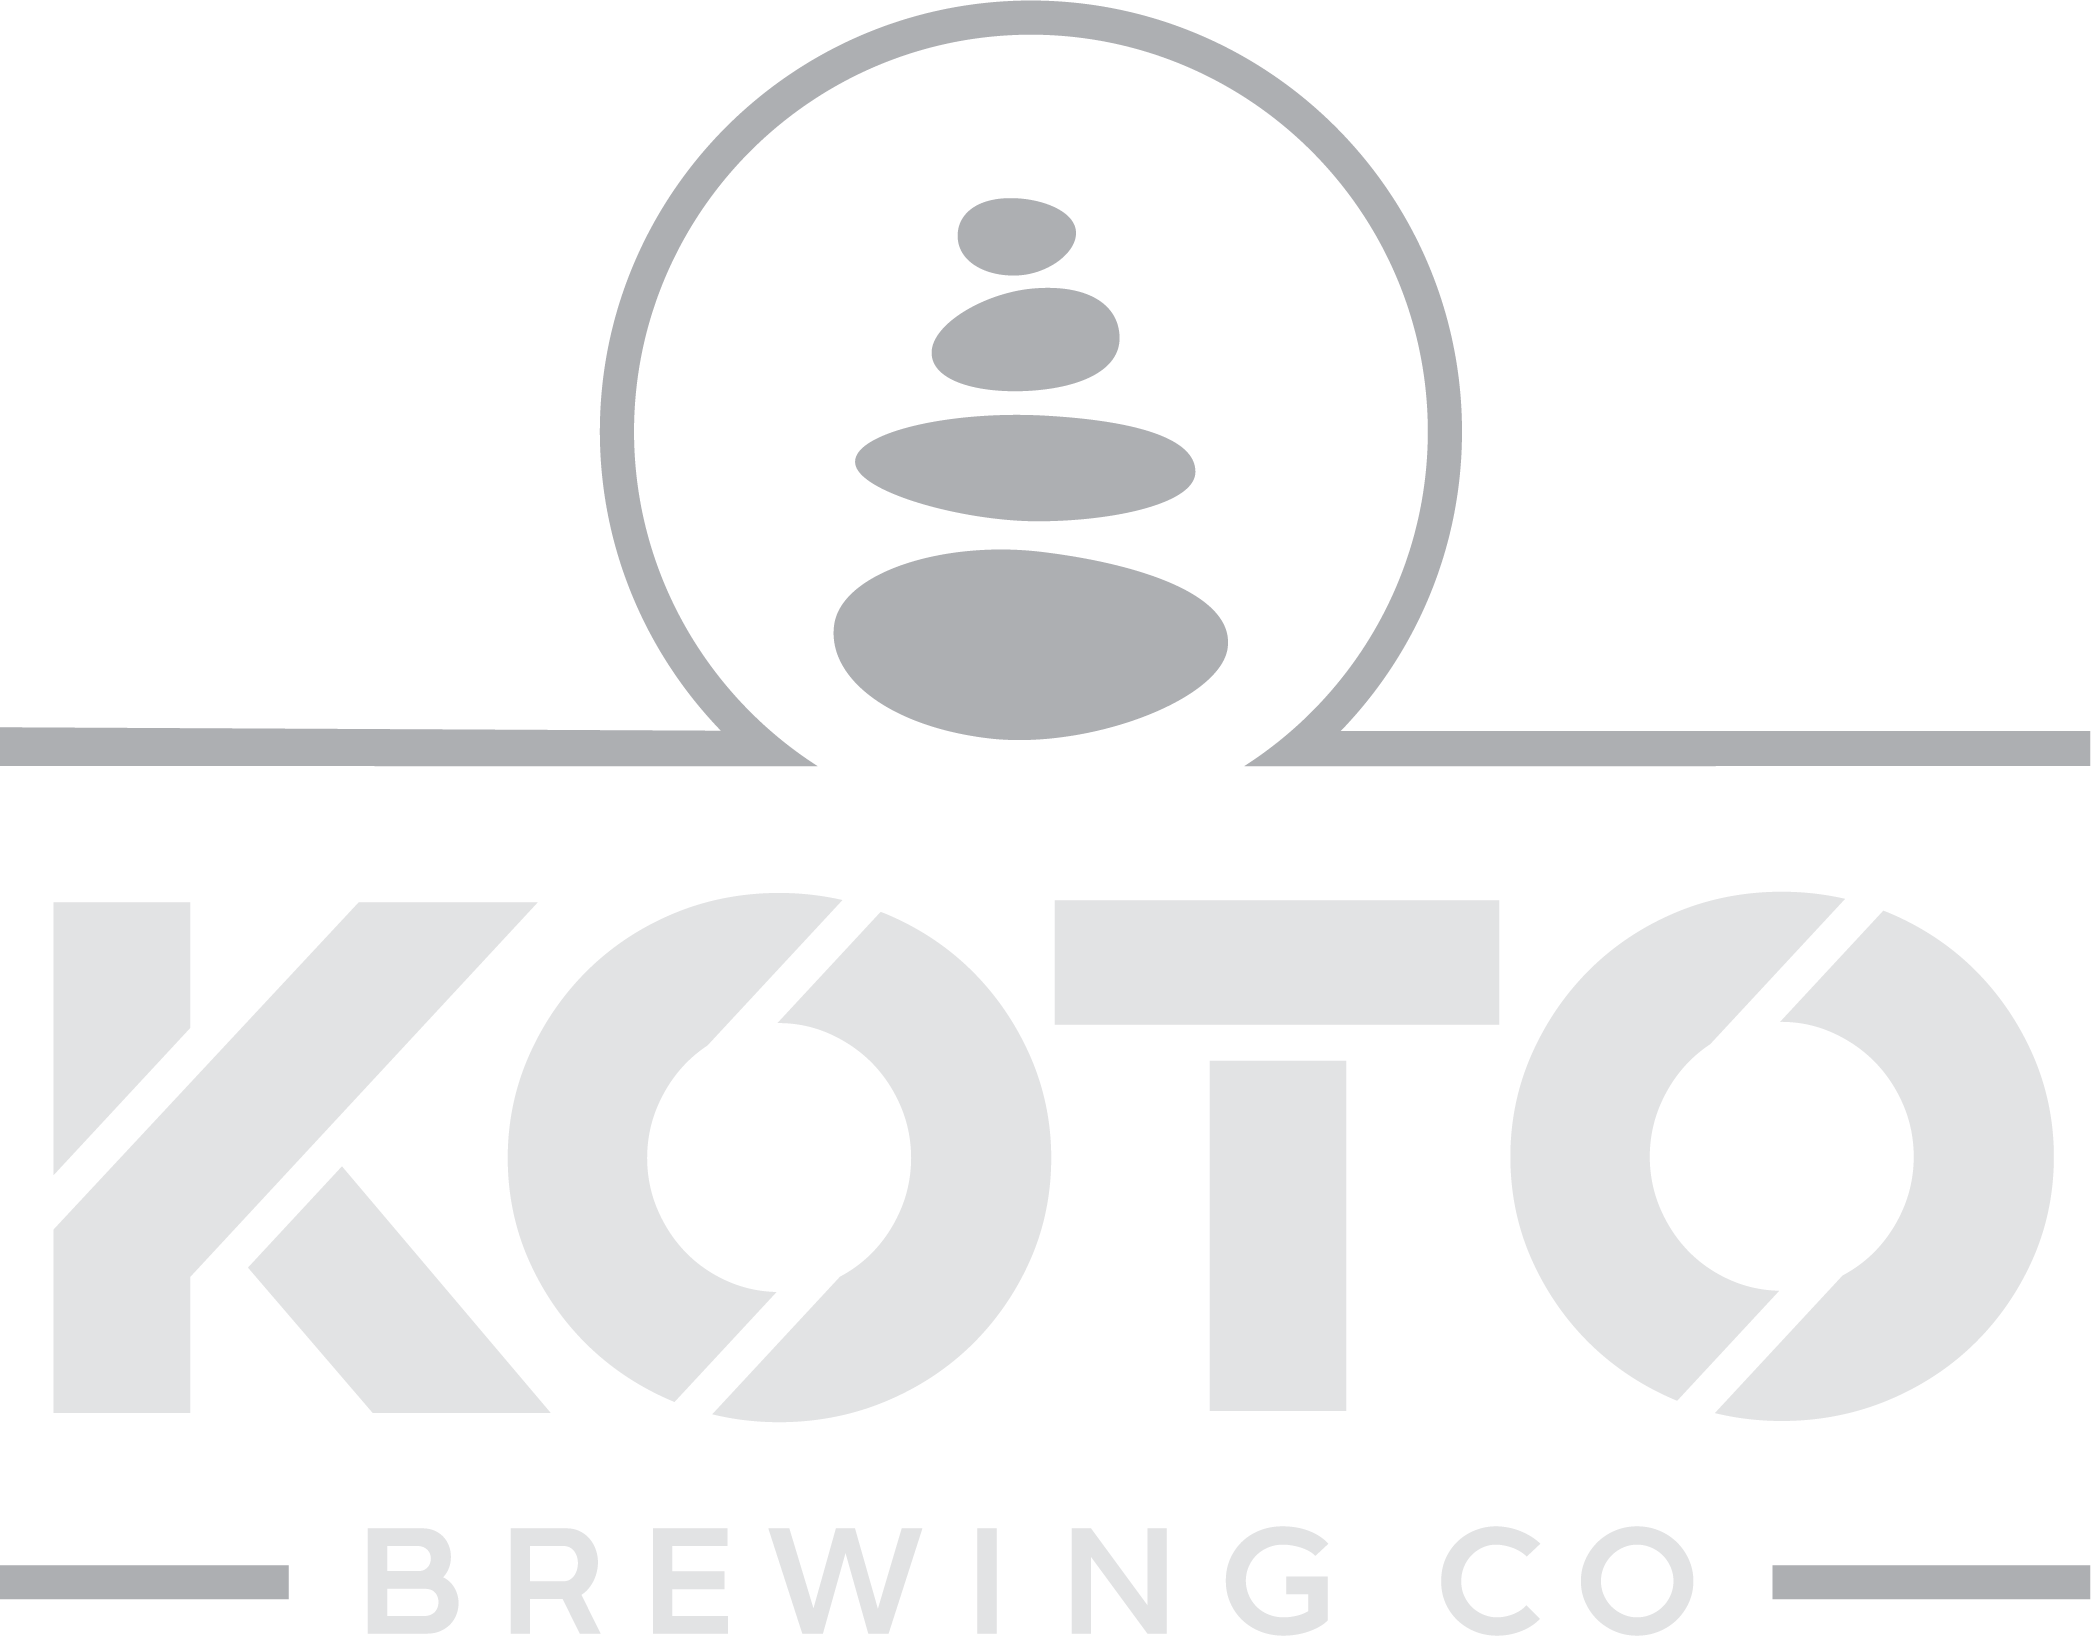 KOTO Brewing Co.